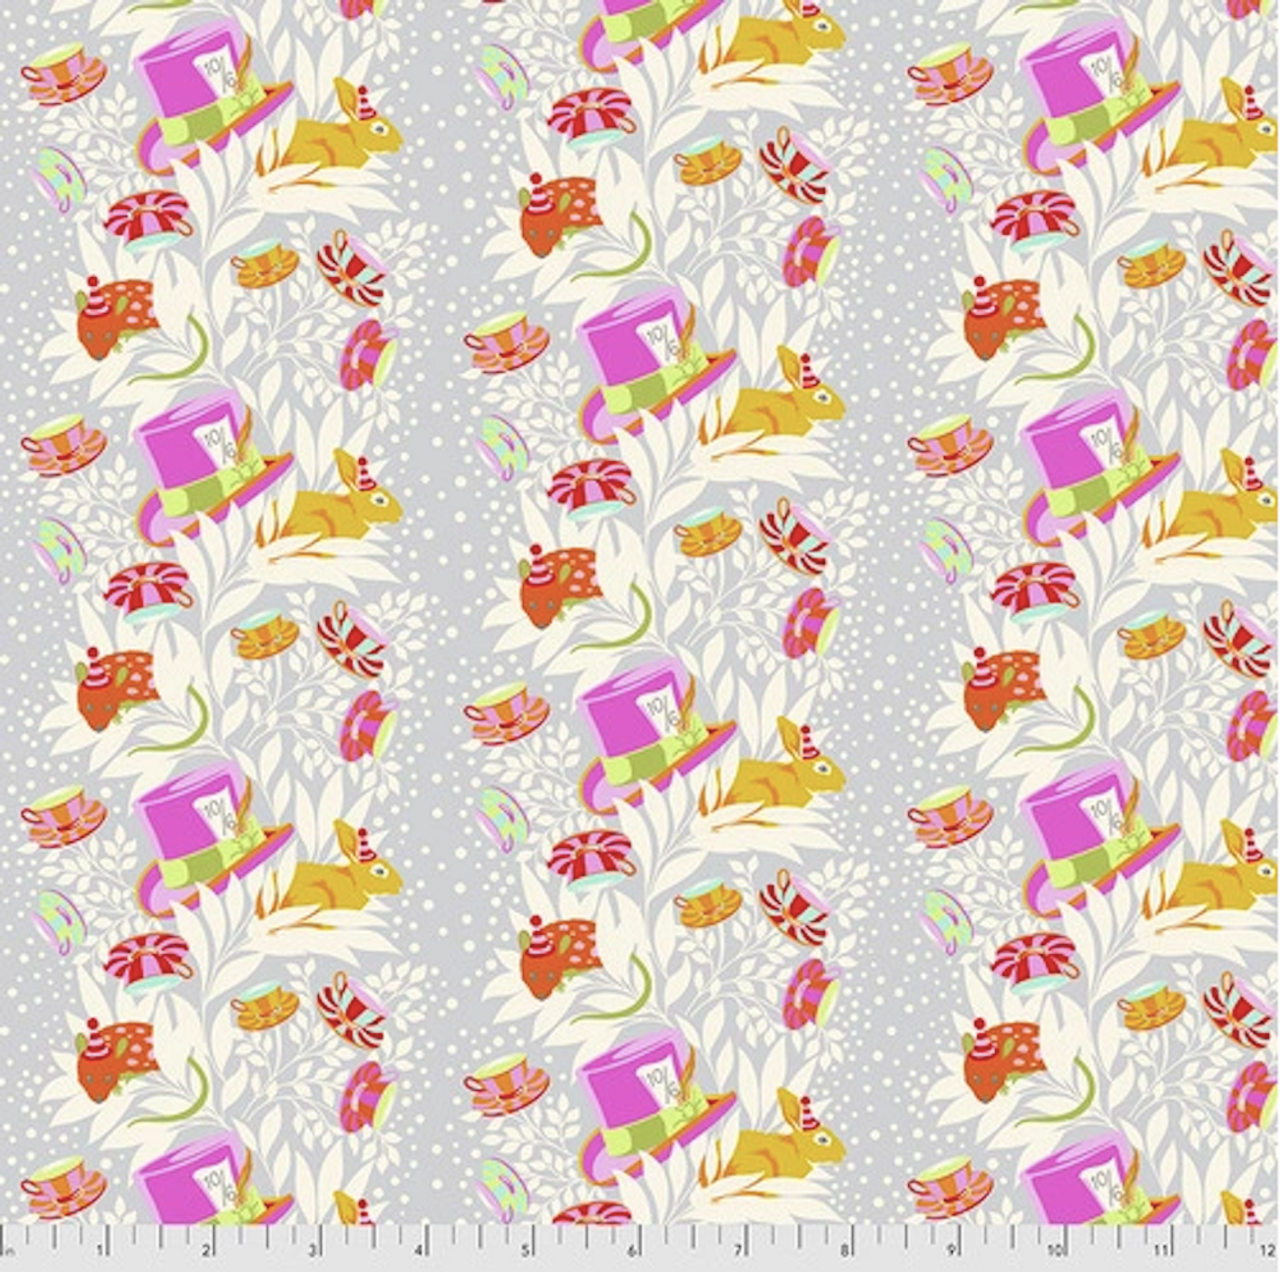 Tula Pink PWTP165 Curiouser & Curiouser 6pm Somewhere Wonder Cotton Fabric By Yd